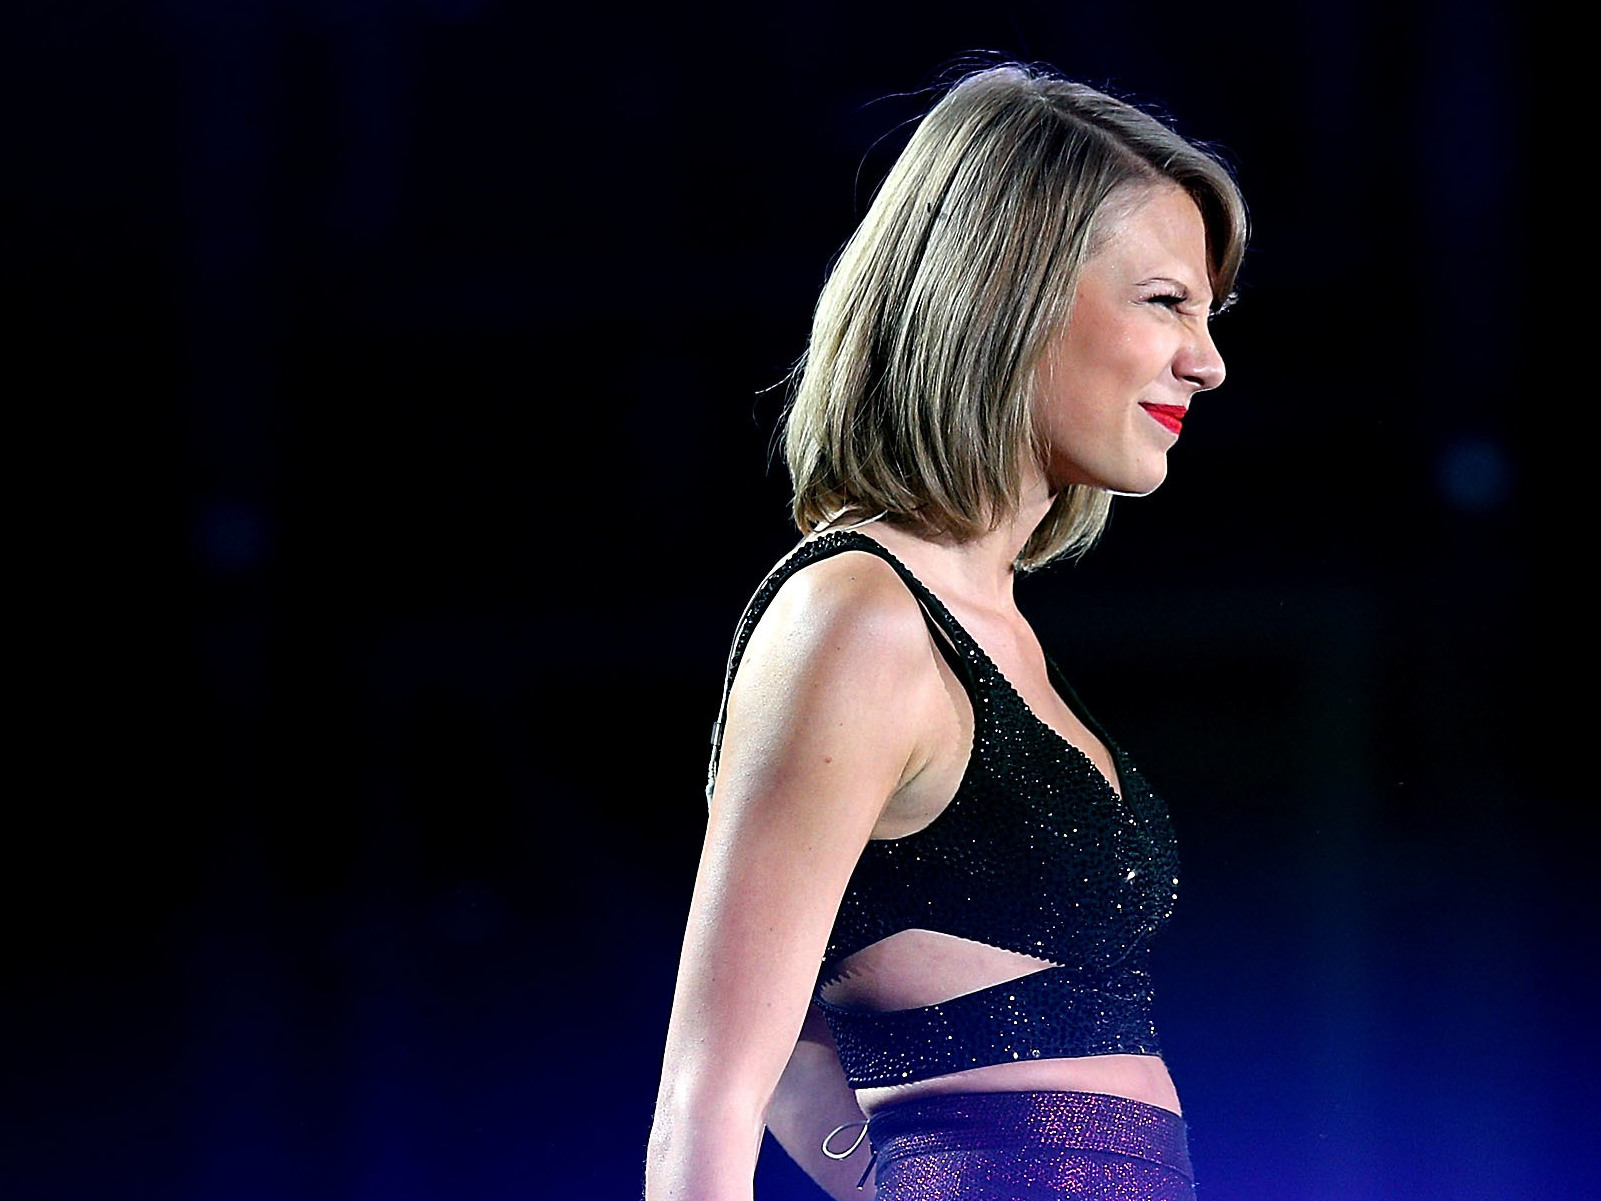 Taylor Swift's Music Is Now Back For Streaming On Spotify